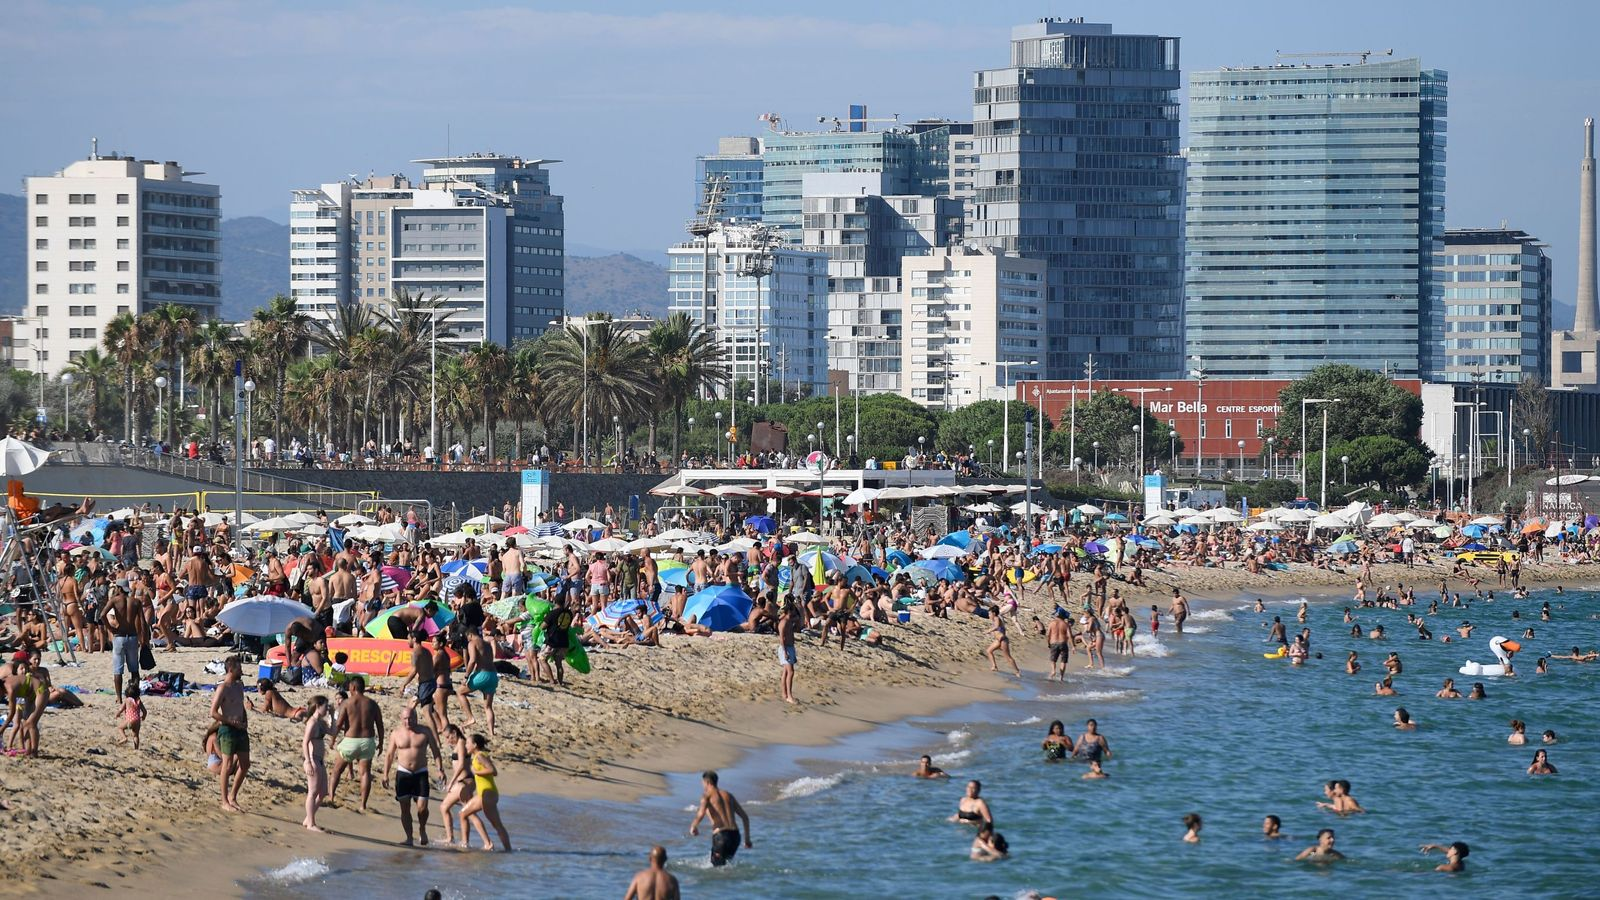 coronavirus barcelona beaches packed after fed up locals ignore stay at home advice amid covid 19 spike world news sky news coronavirus barcelona beaches packed